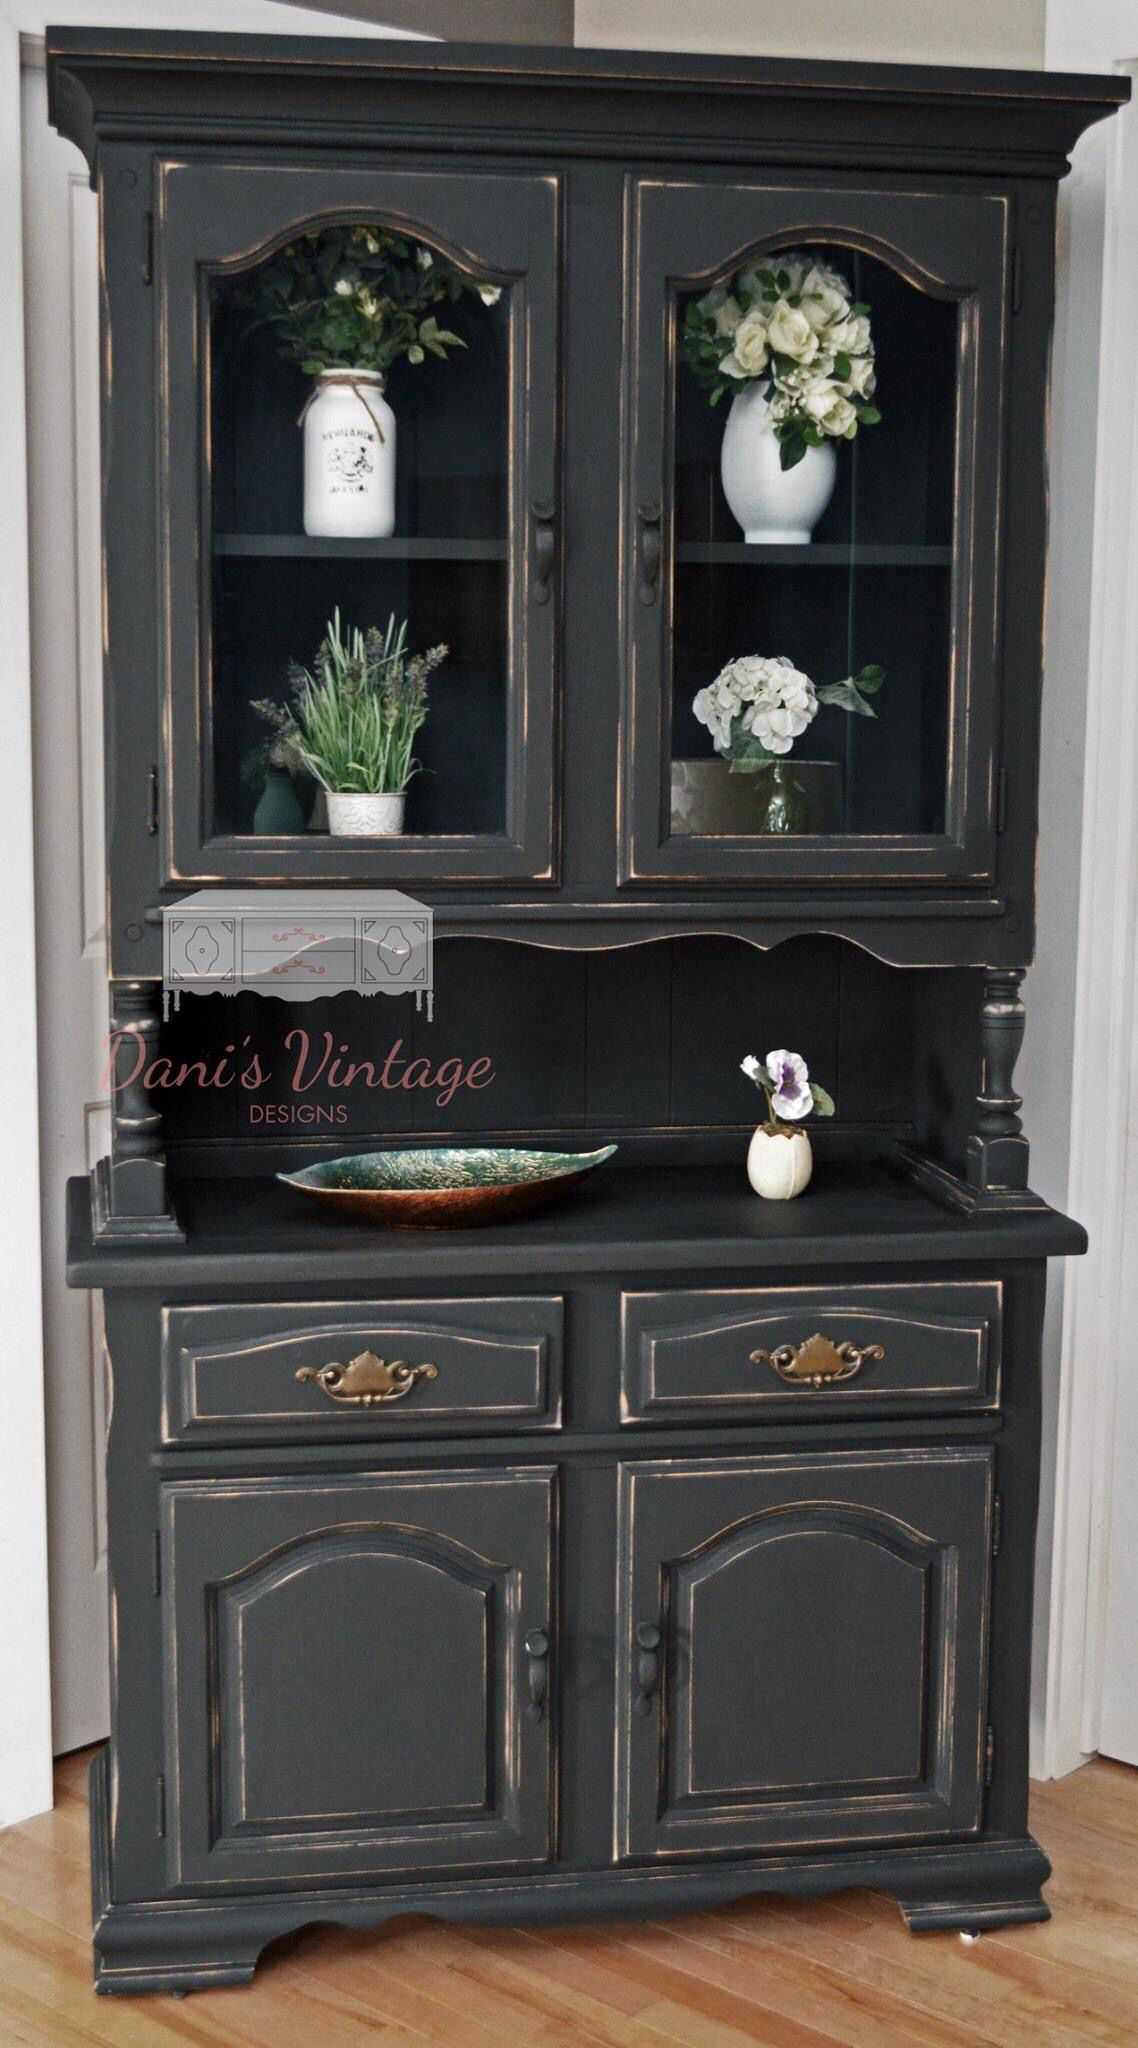 This cabinet may be black but thanks to its antique vibe it takes the